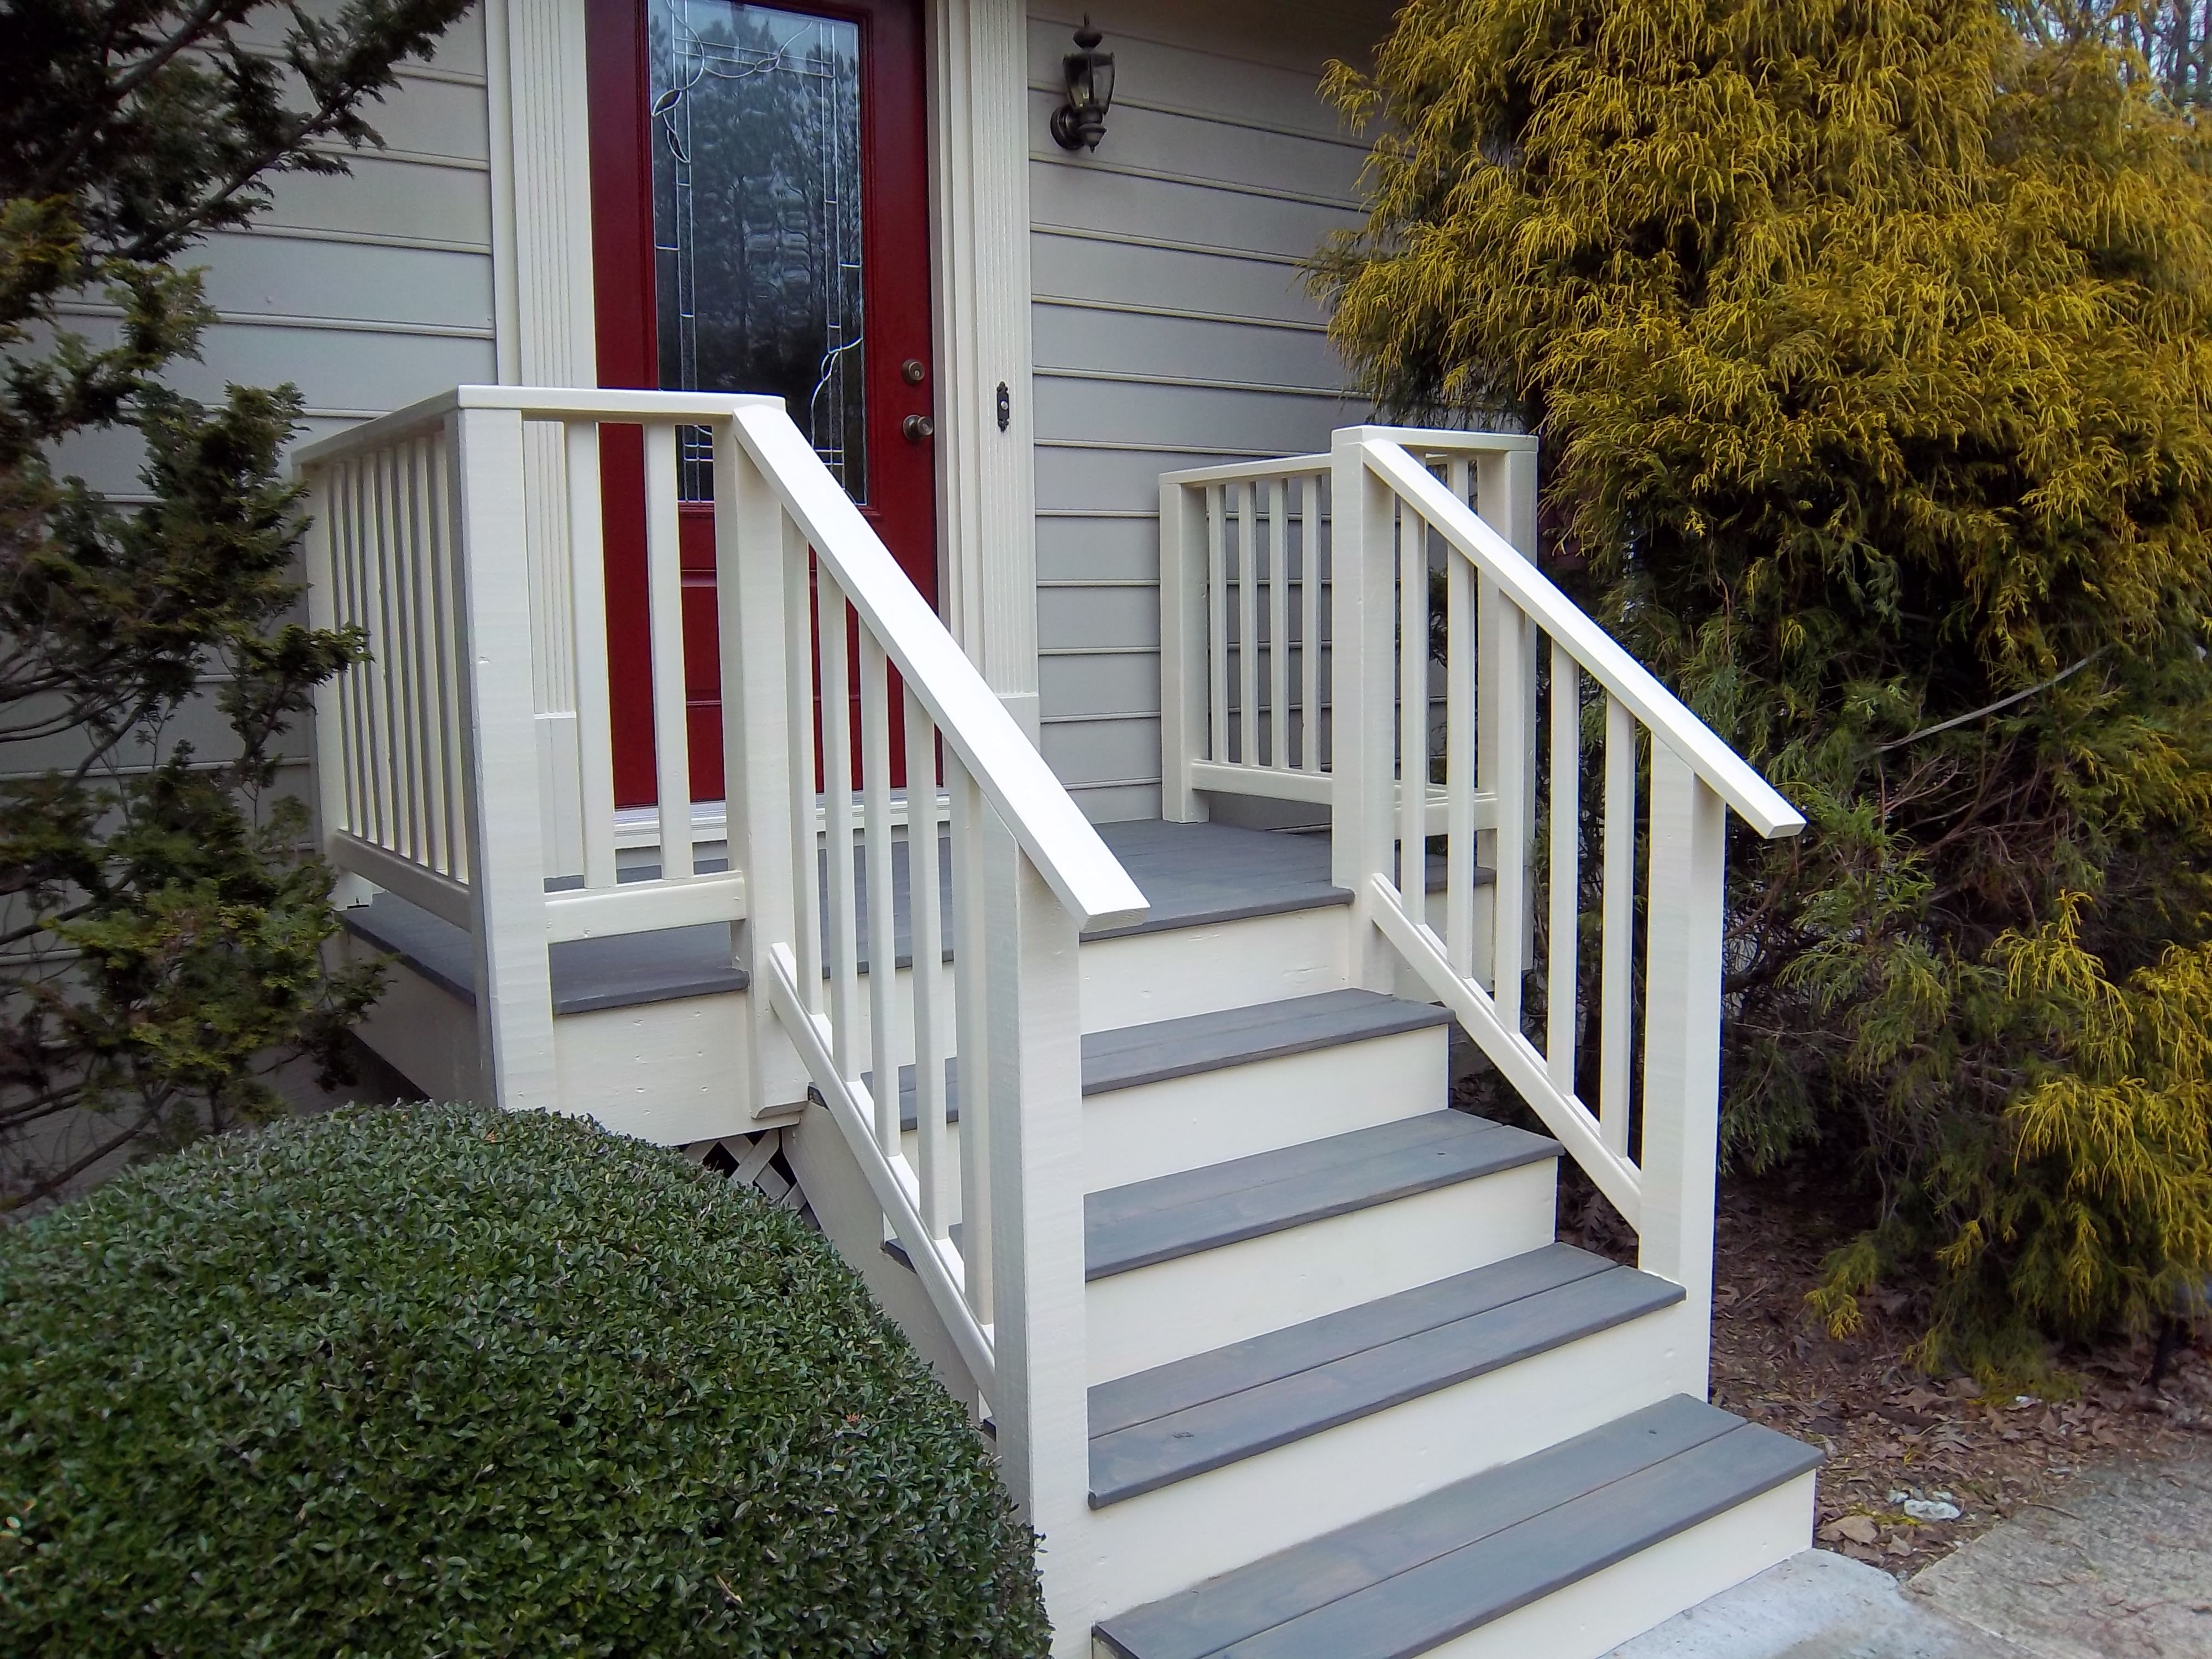 Front Porch Face Lift Robert S Shuping Wood Works Front Porch | Staircase Replacement Near Me | Deck | Handrail | Carpeted Stairs | Riser | Stair Runner